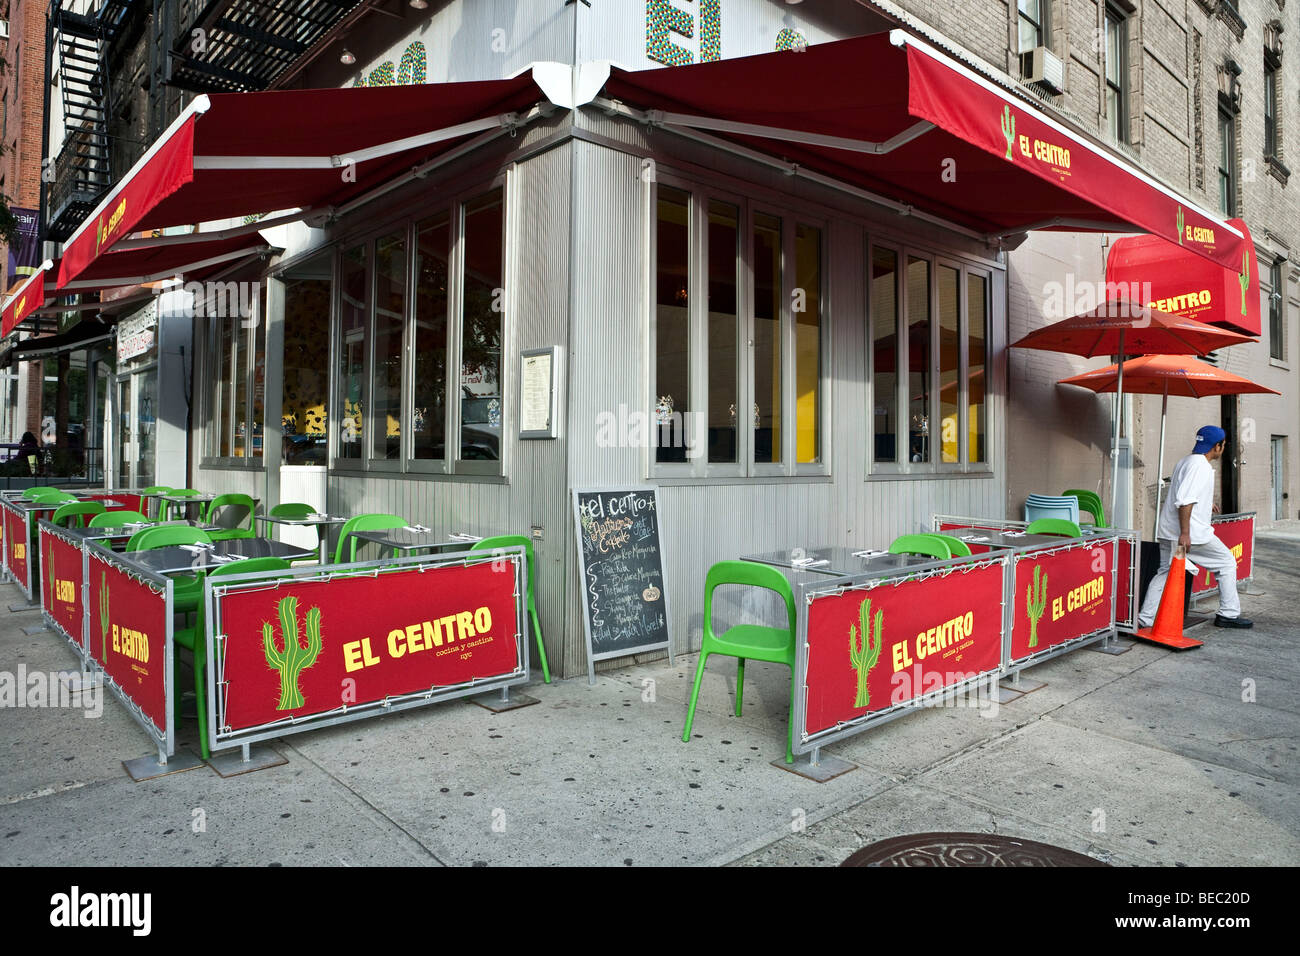 corner Mexican restaurant with awning & sidewalk seating in Mexican colors in New York City Hells Kitchen neighborhood - Stock Image